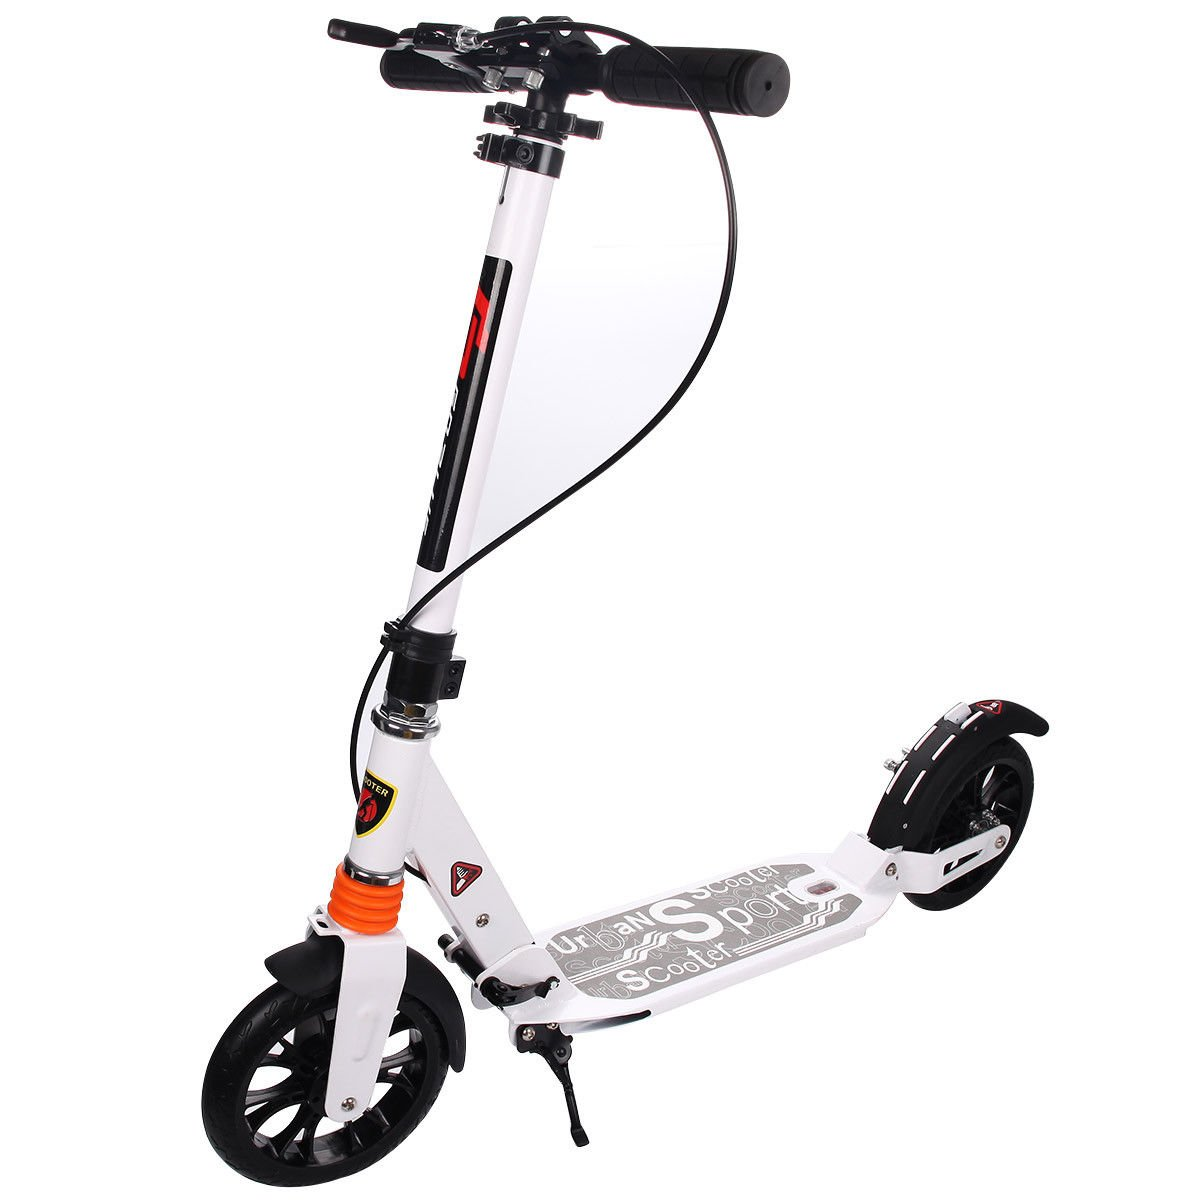 Goplus Folding Kick Scooter for Adult Teen Deluxe Aluminum 2 Big Rubber Wheels Glider Adjustable Height w/ Dual Suspension, 220lbs Capacity (White)